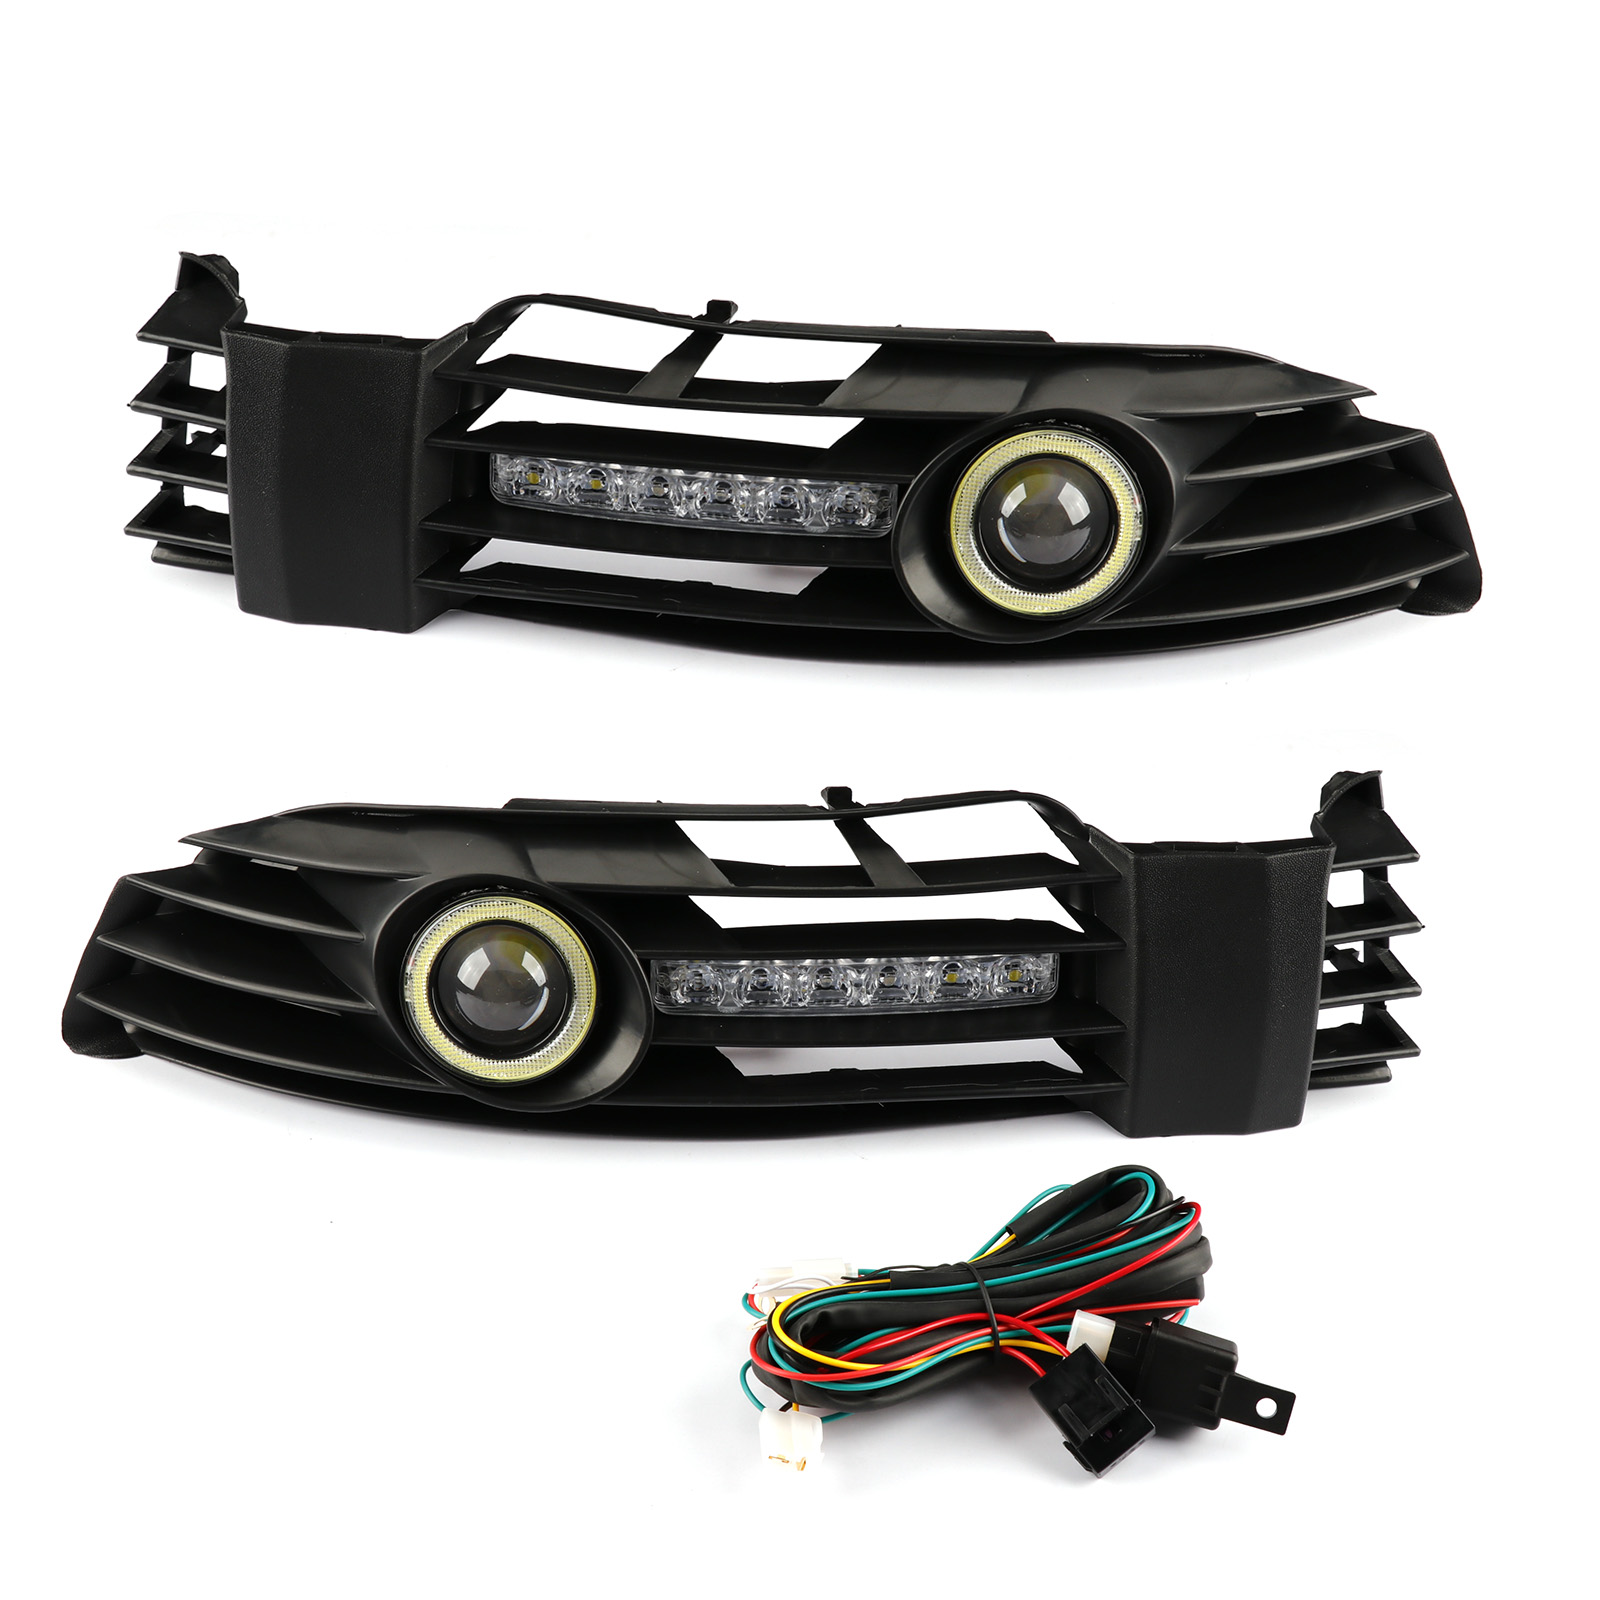 Pair DRL Front Bumper Grille Fog <font><b>Light</b></font> w/<font><b>LED</b></font> For <font><b>VW</b></font> Volkswagen <font><b>Passat</b></font> <font><b>B5</b></font>/<font><b>B5</b></font>.5 2001 2002 2003 2004 2005 image